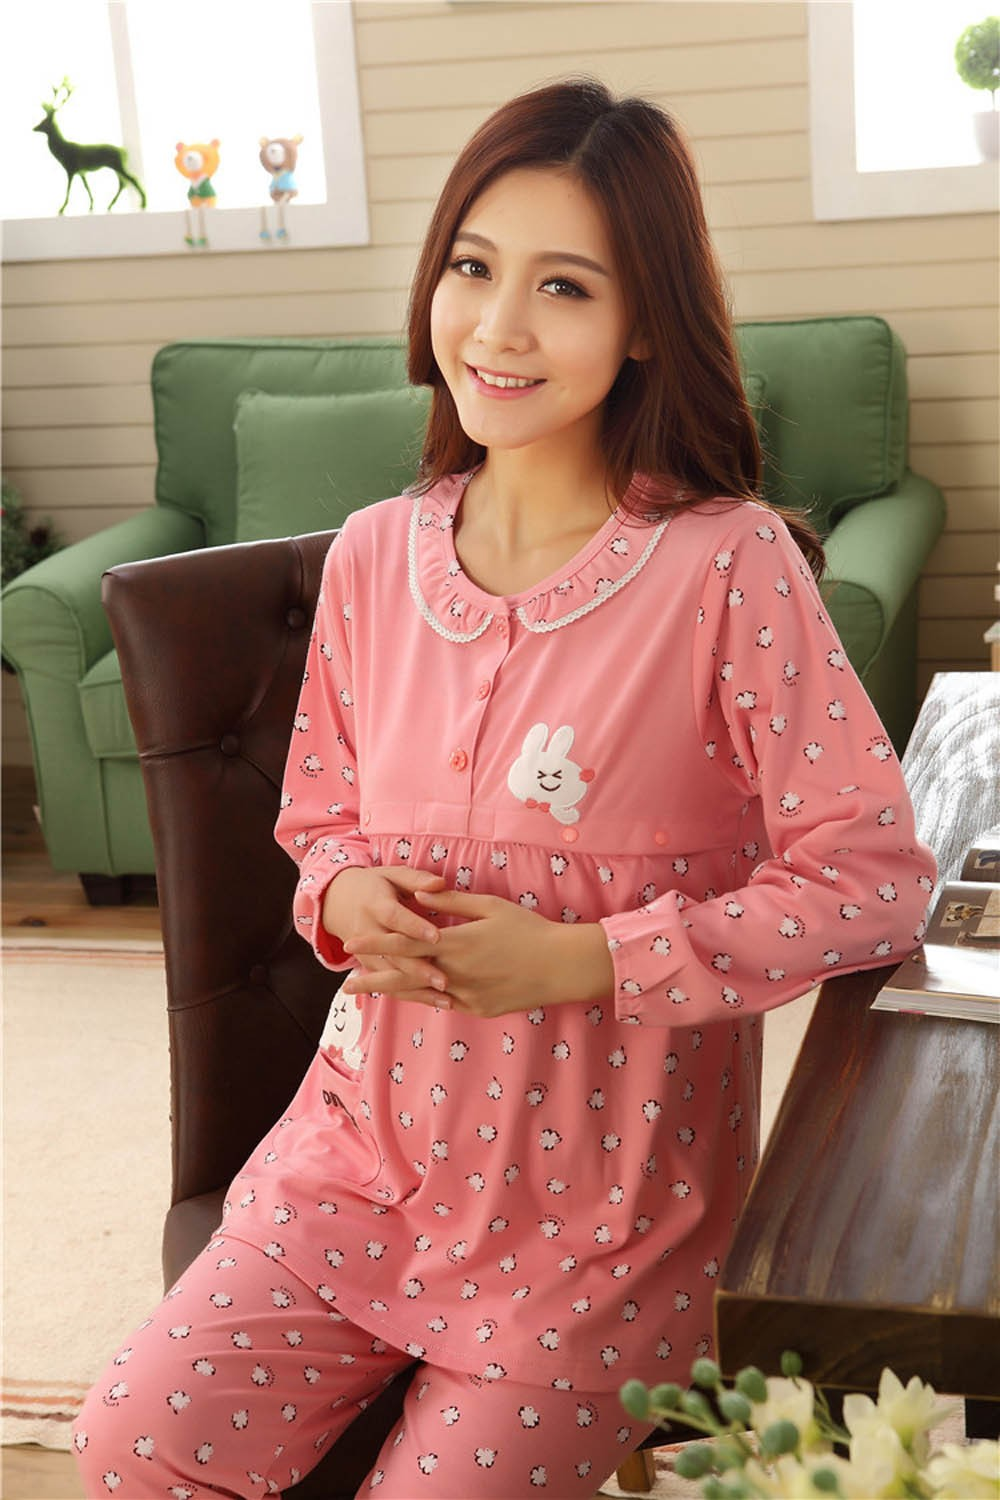 Pregnant-Woman-Pajamas-Postpartum-Breastfeeding-Month-Of-Serving-Lapel-Clothes-Long-sleeve-Sleepwear-Suits-CL0800 (14)